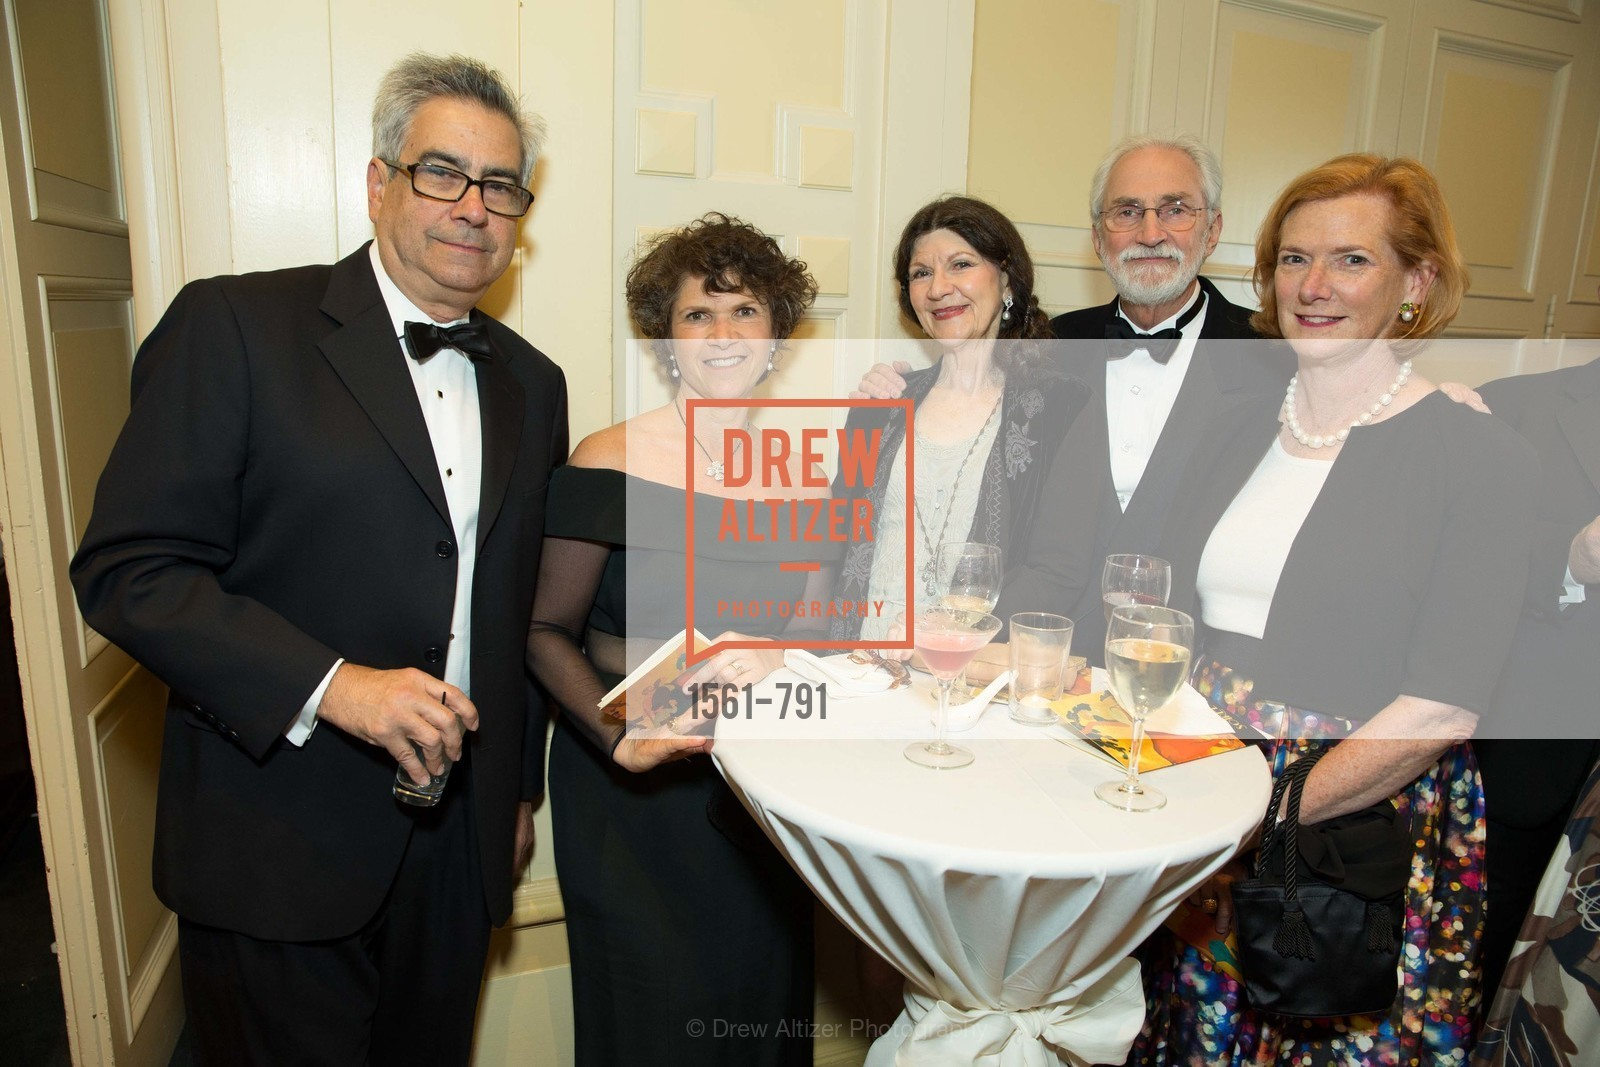 Rebecca Schnier, Susan Plath, Steve Plath, SAN FRANCISCO HERITAGE Soiree 2015, US, April 19th, 2015,Drew Altizer, Drew Altizer Photography, full-service agency, private events, San Francisco photographer, photographer california